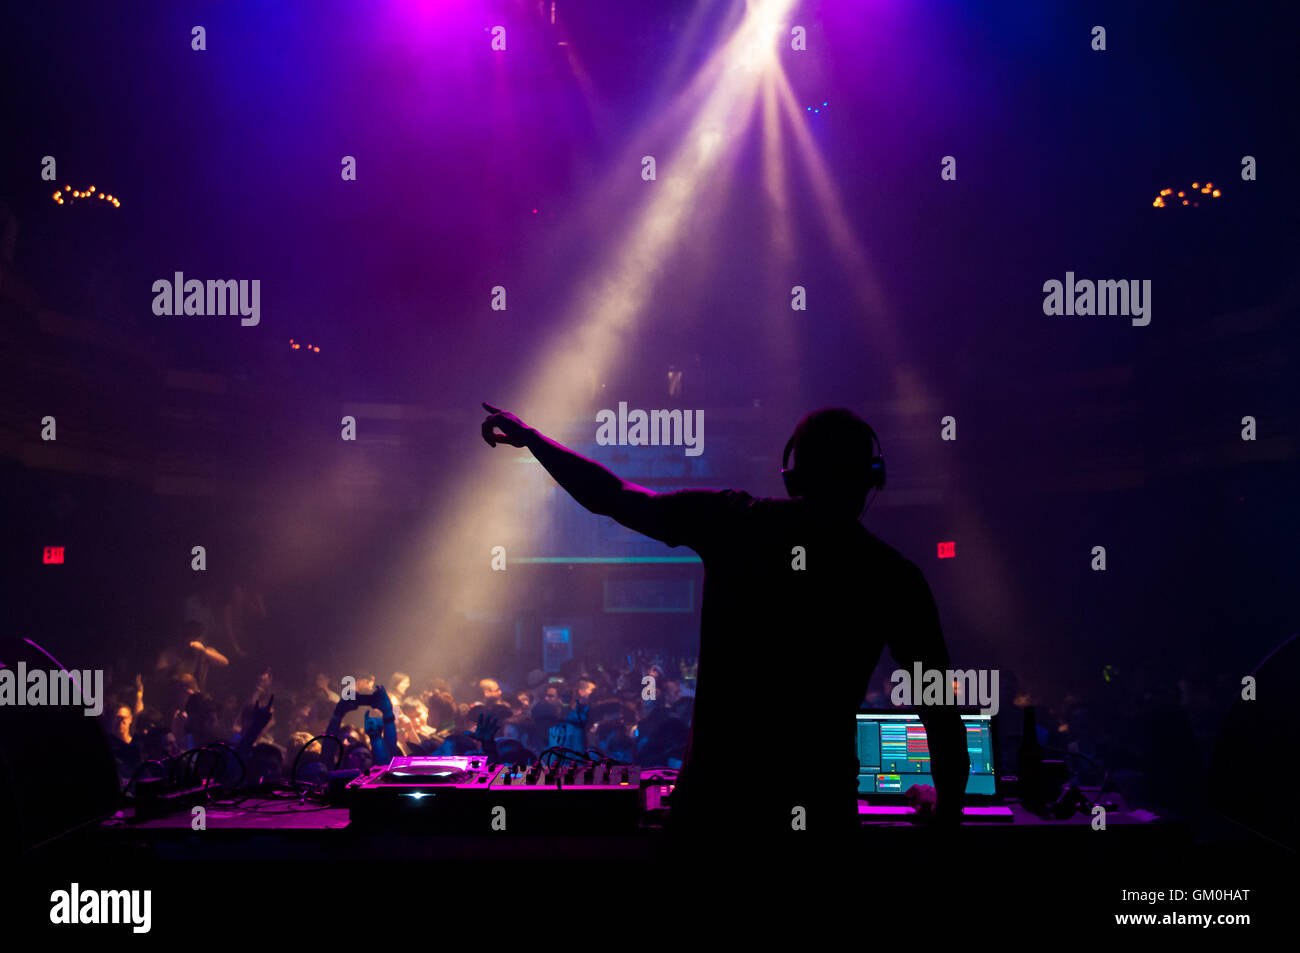 A DJ performing at a concert - Stock Image